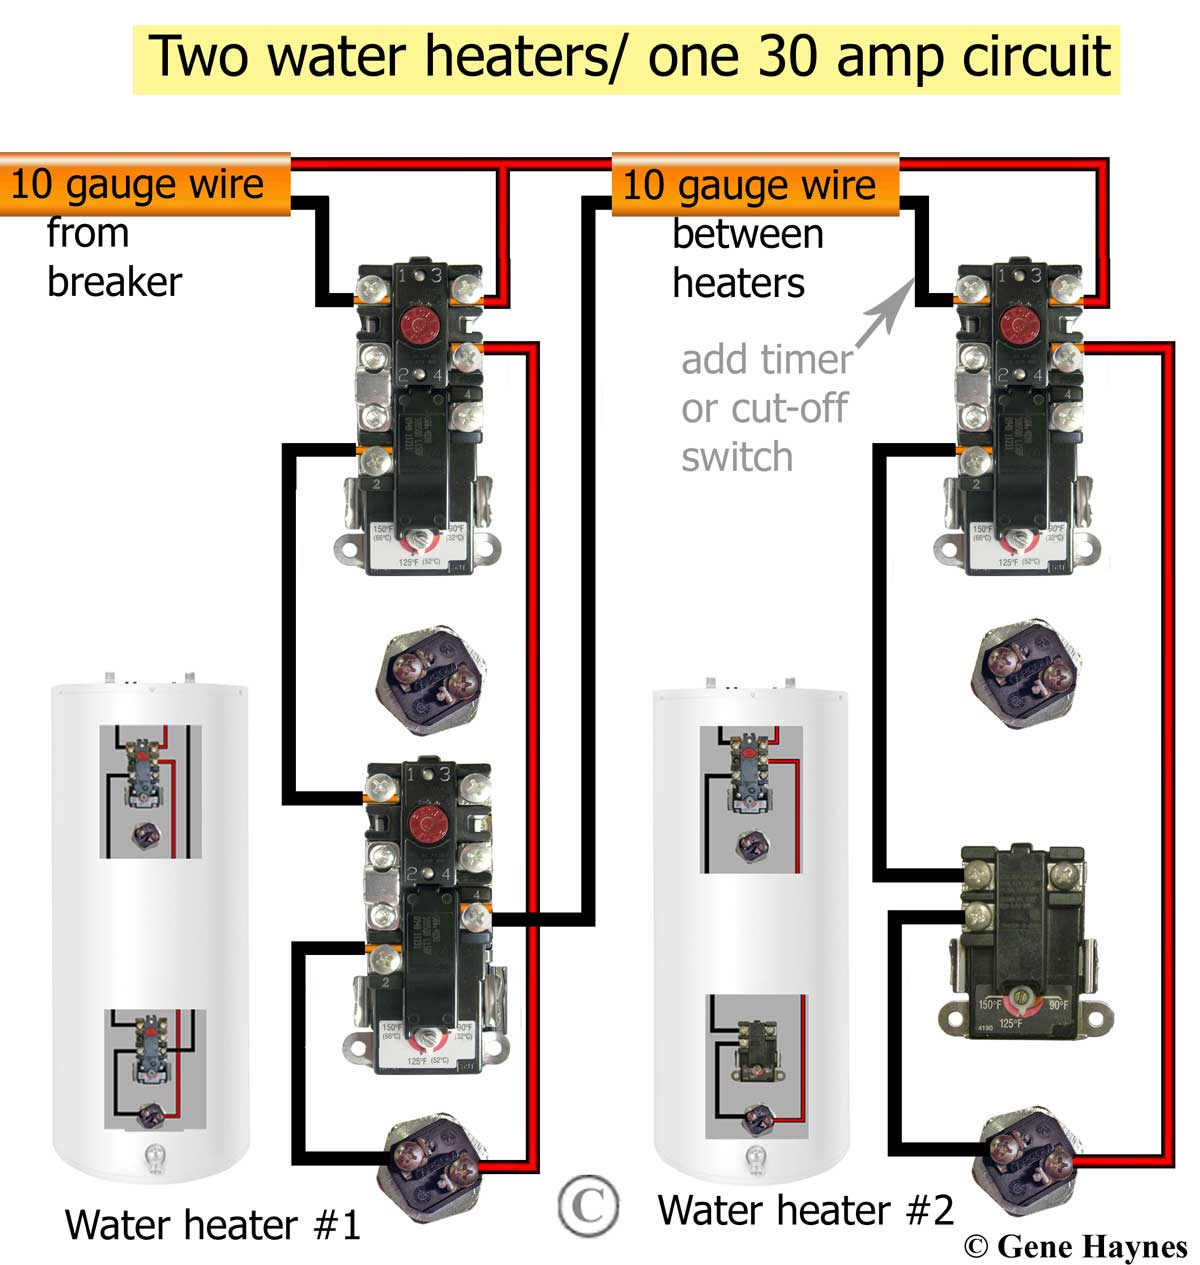 Hot Water Heater 480v Wiring - Schematics Online on